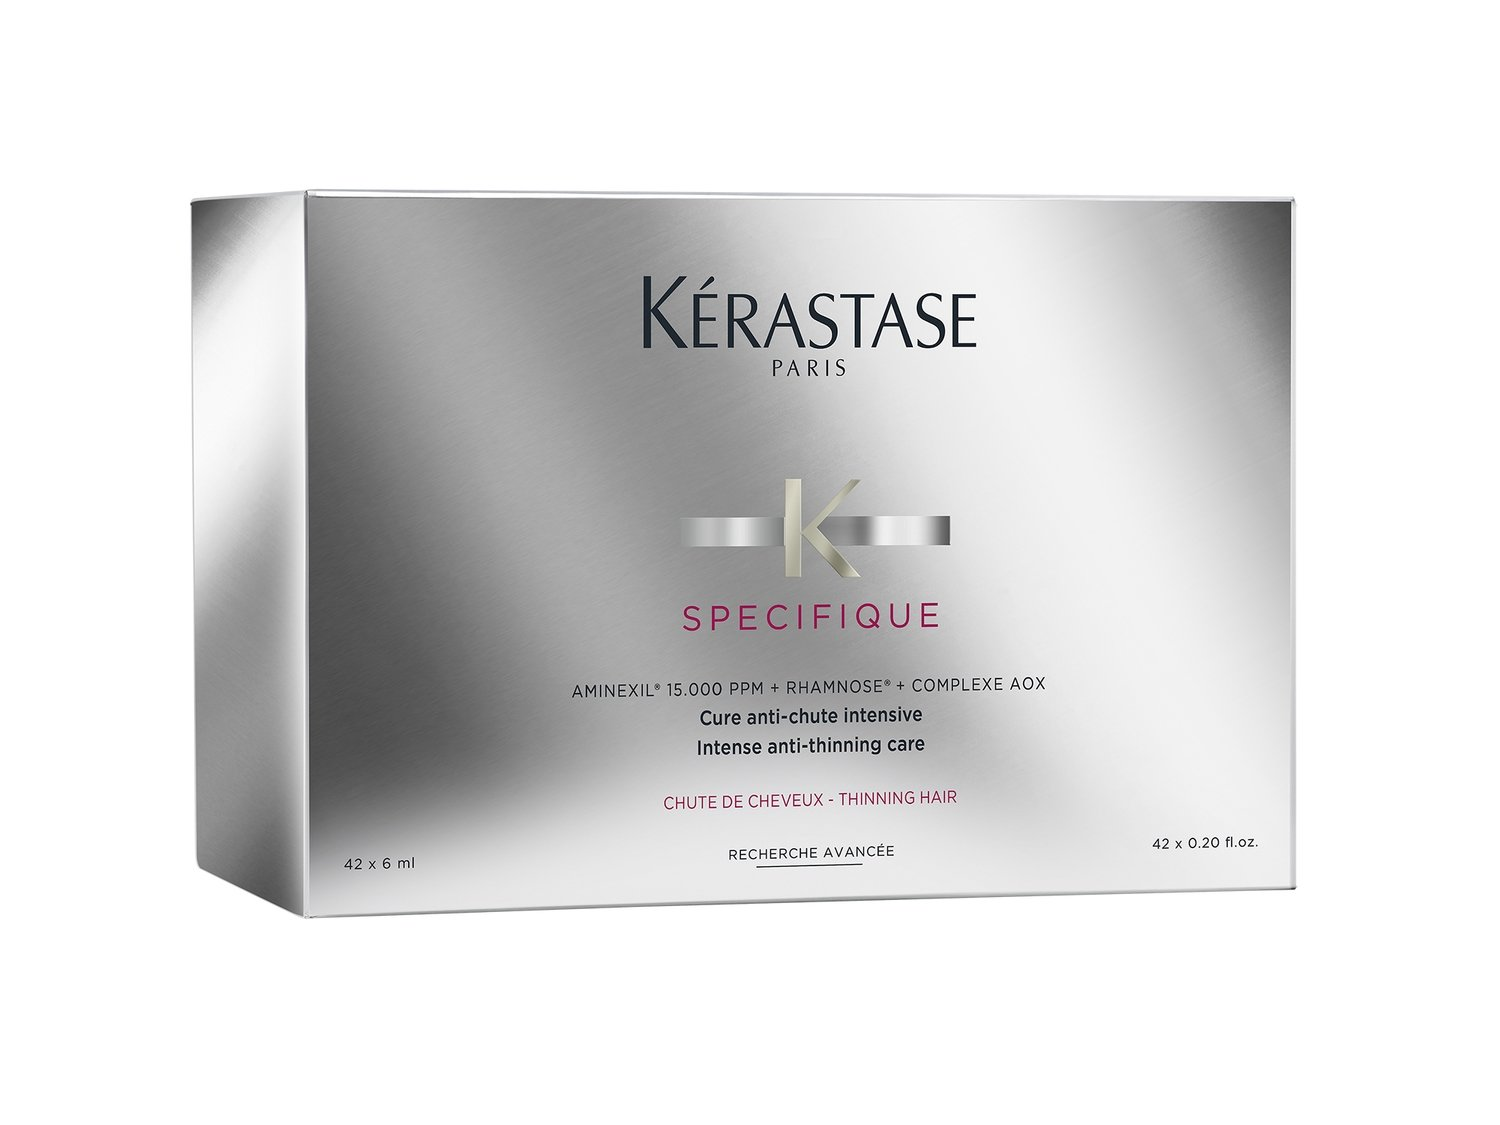 Kérastase Aminexil Force R 42 x 6 ml